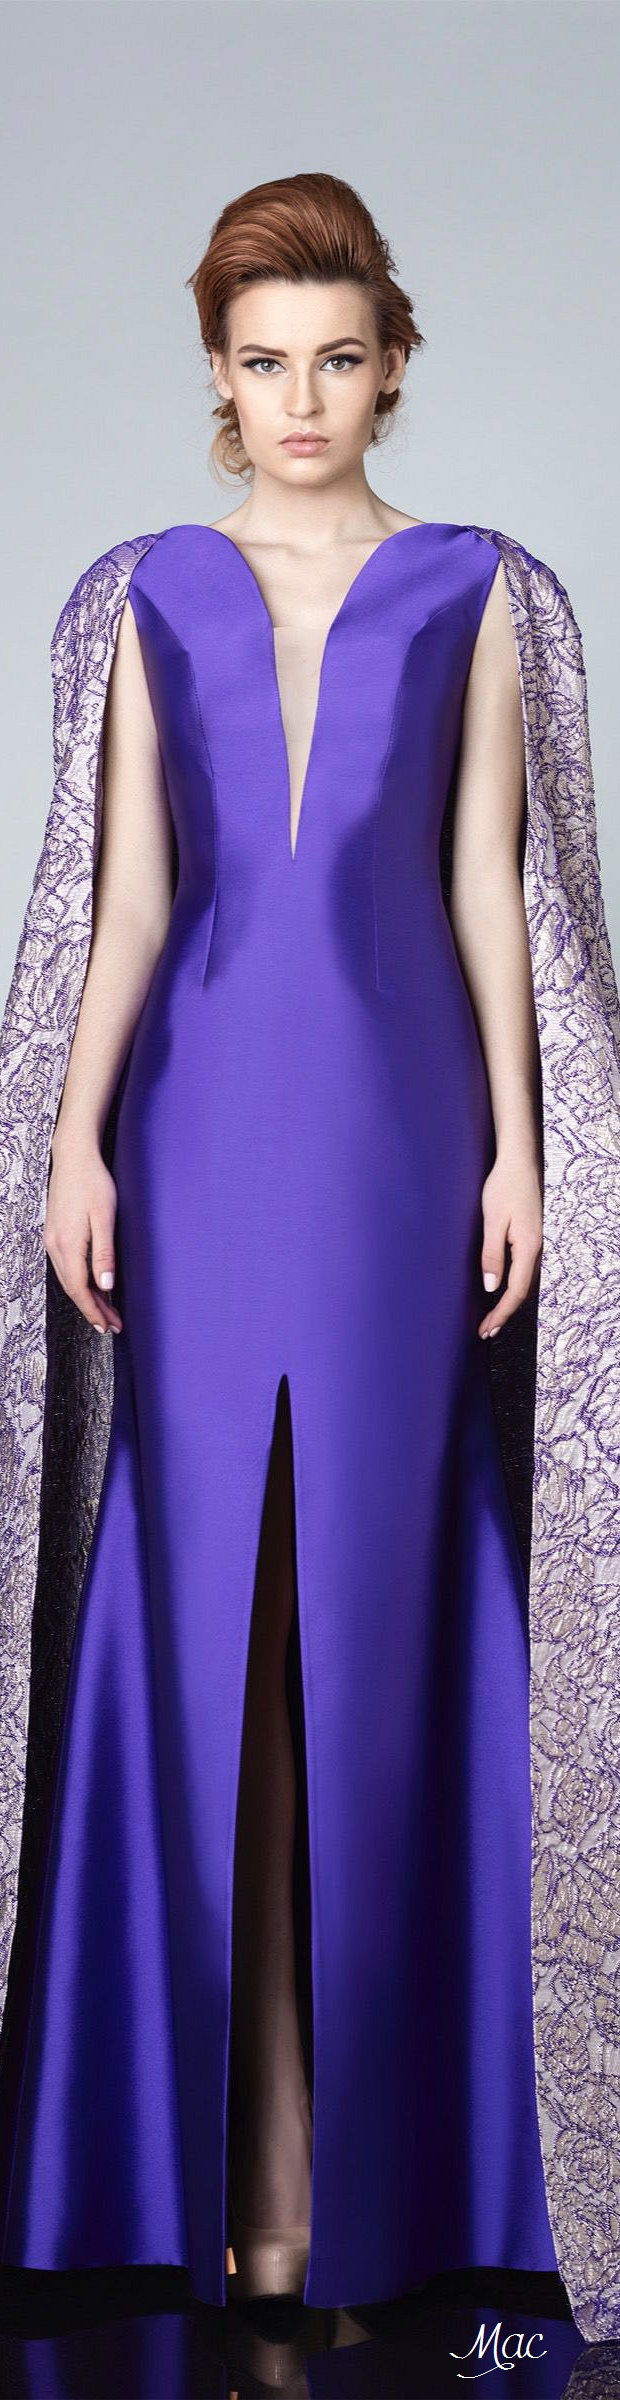 Fall 2016 Ready-to-Wear Divina by Edward Arsouni | Vestido coctel ...